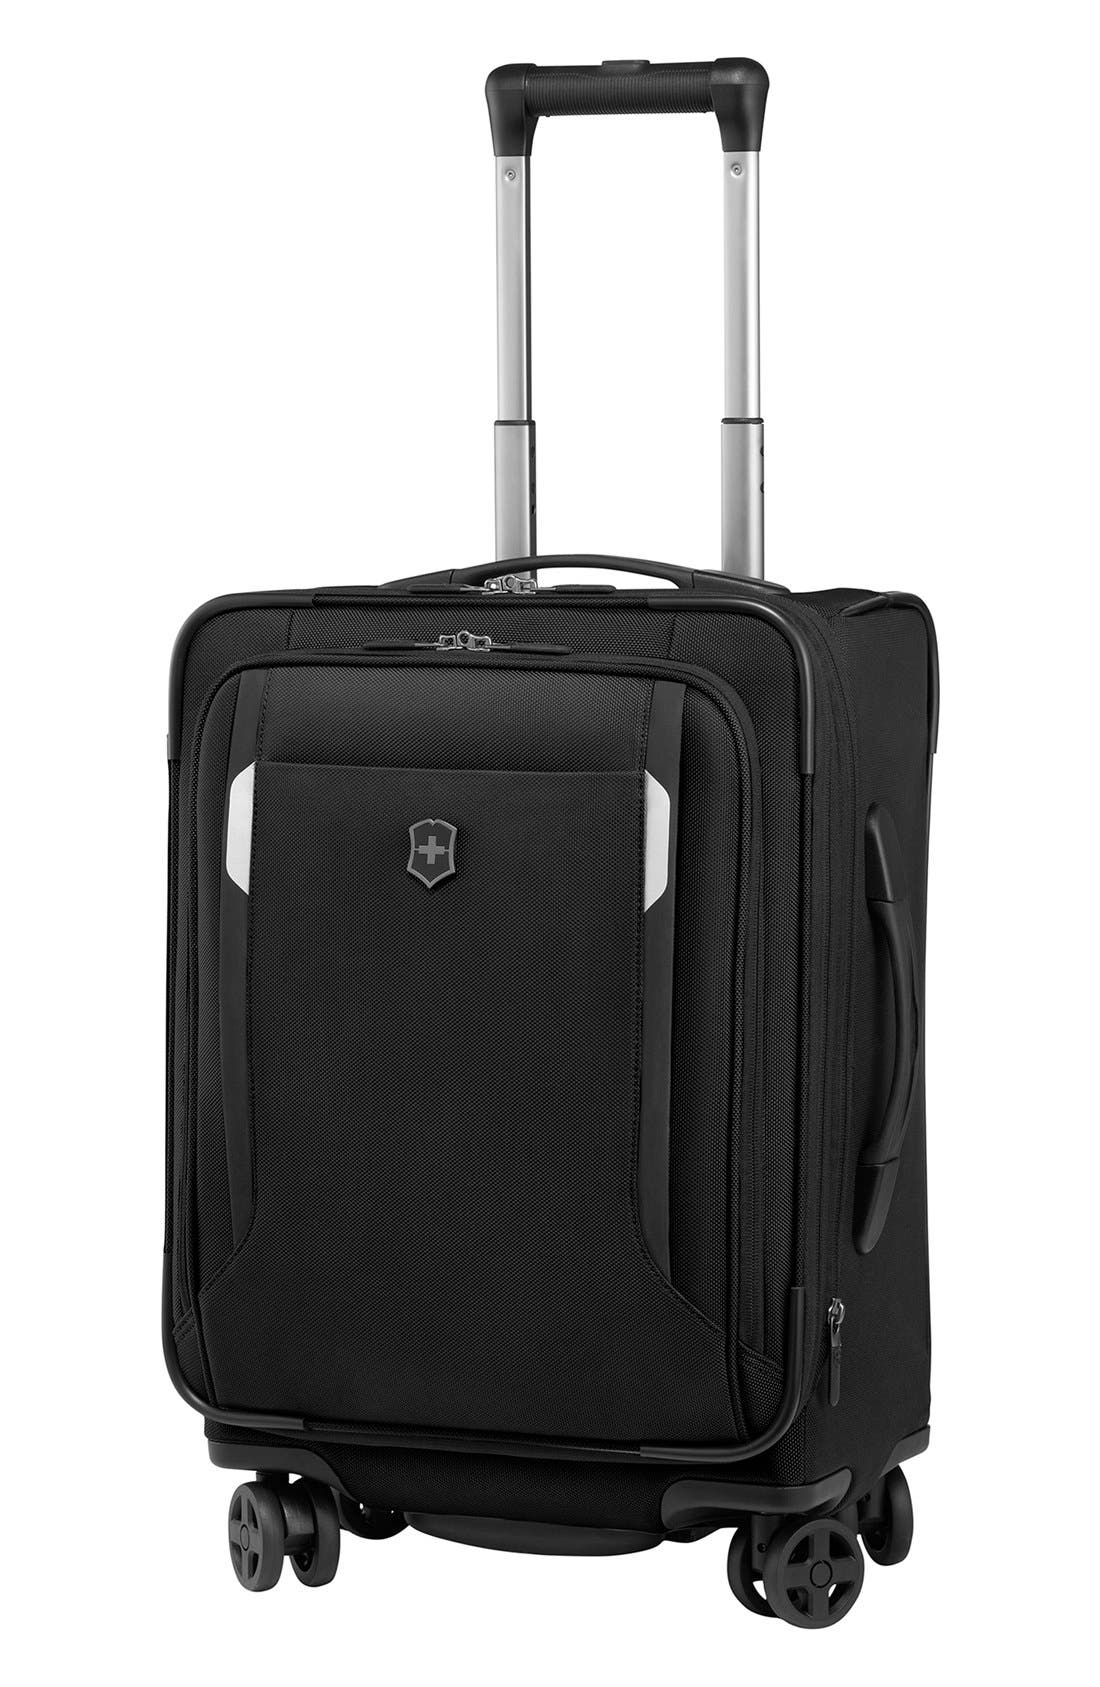 Main Image - Victorinox Swiss Army® WT 5.0 Dual Caster Wheeled 20-Inch Carry-On